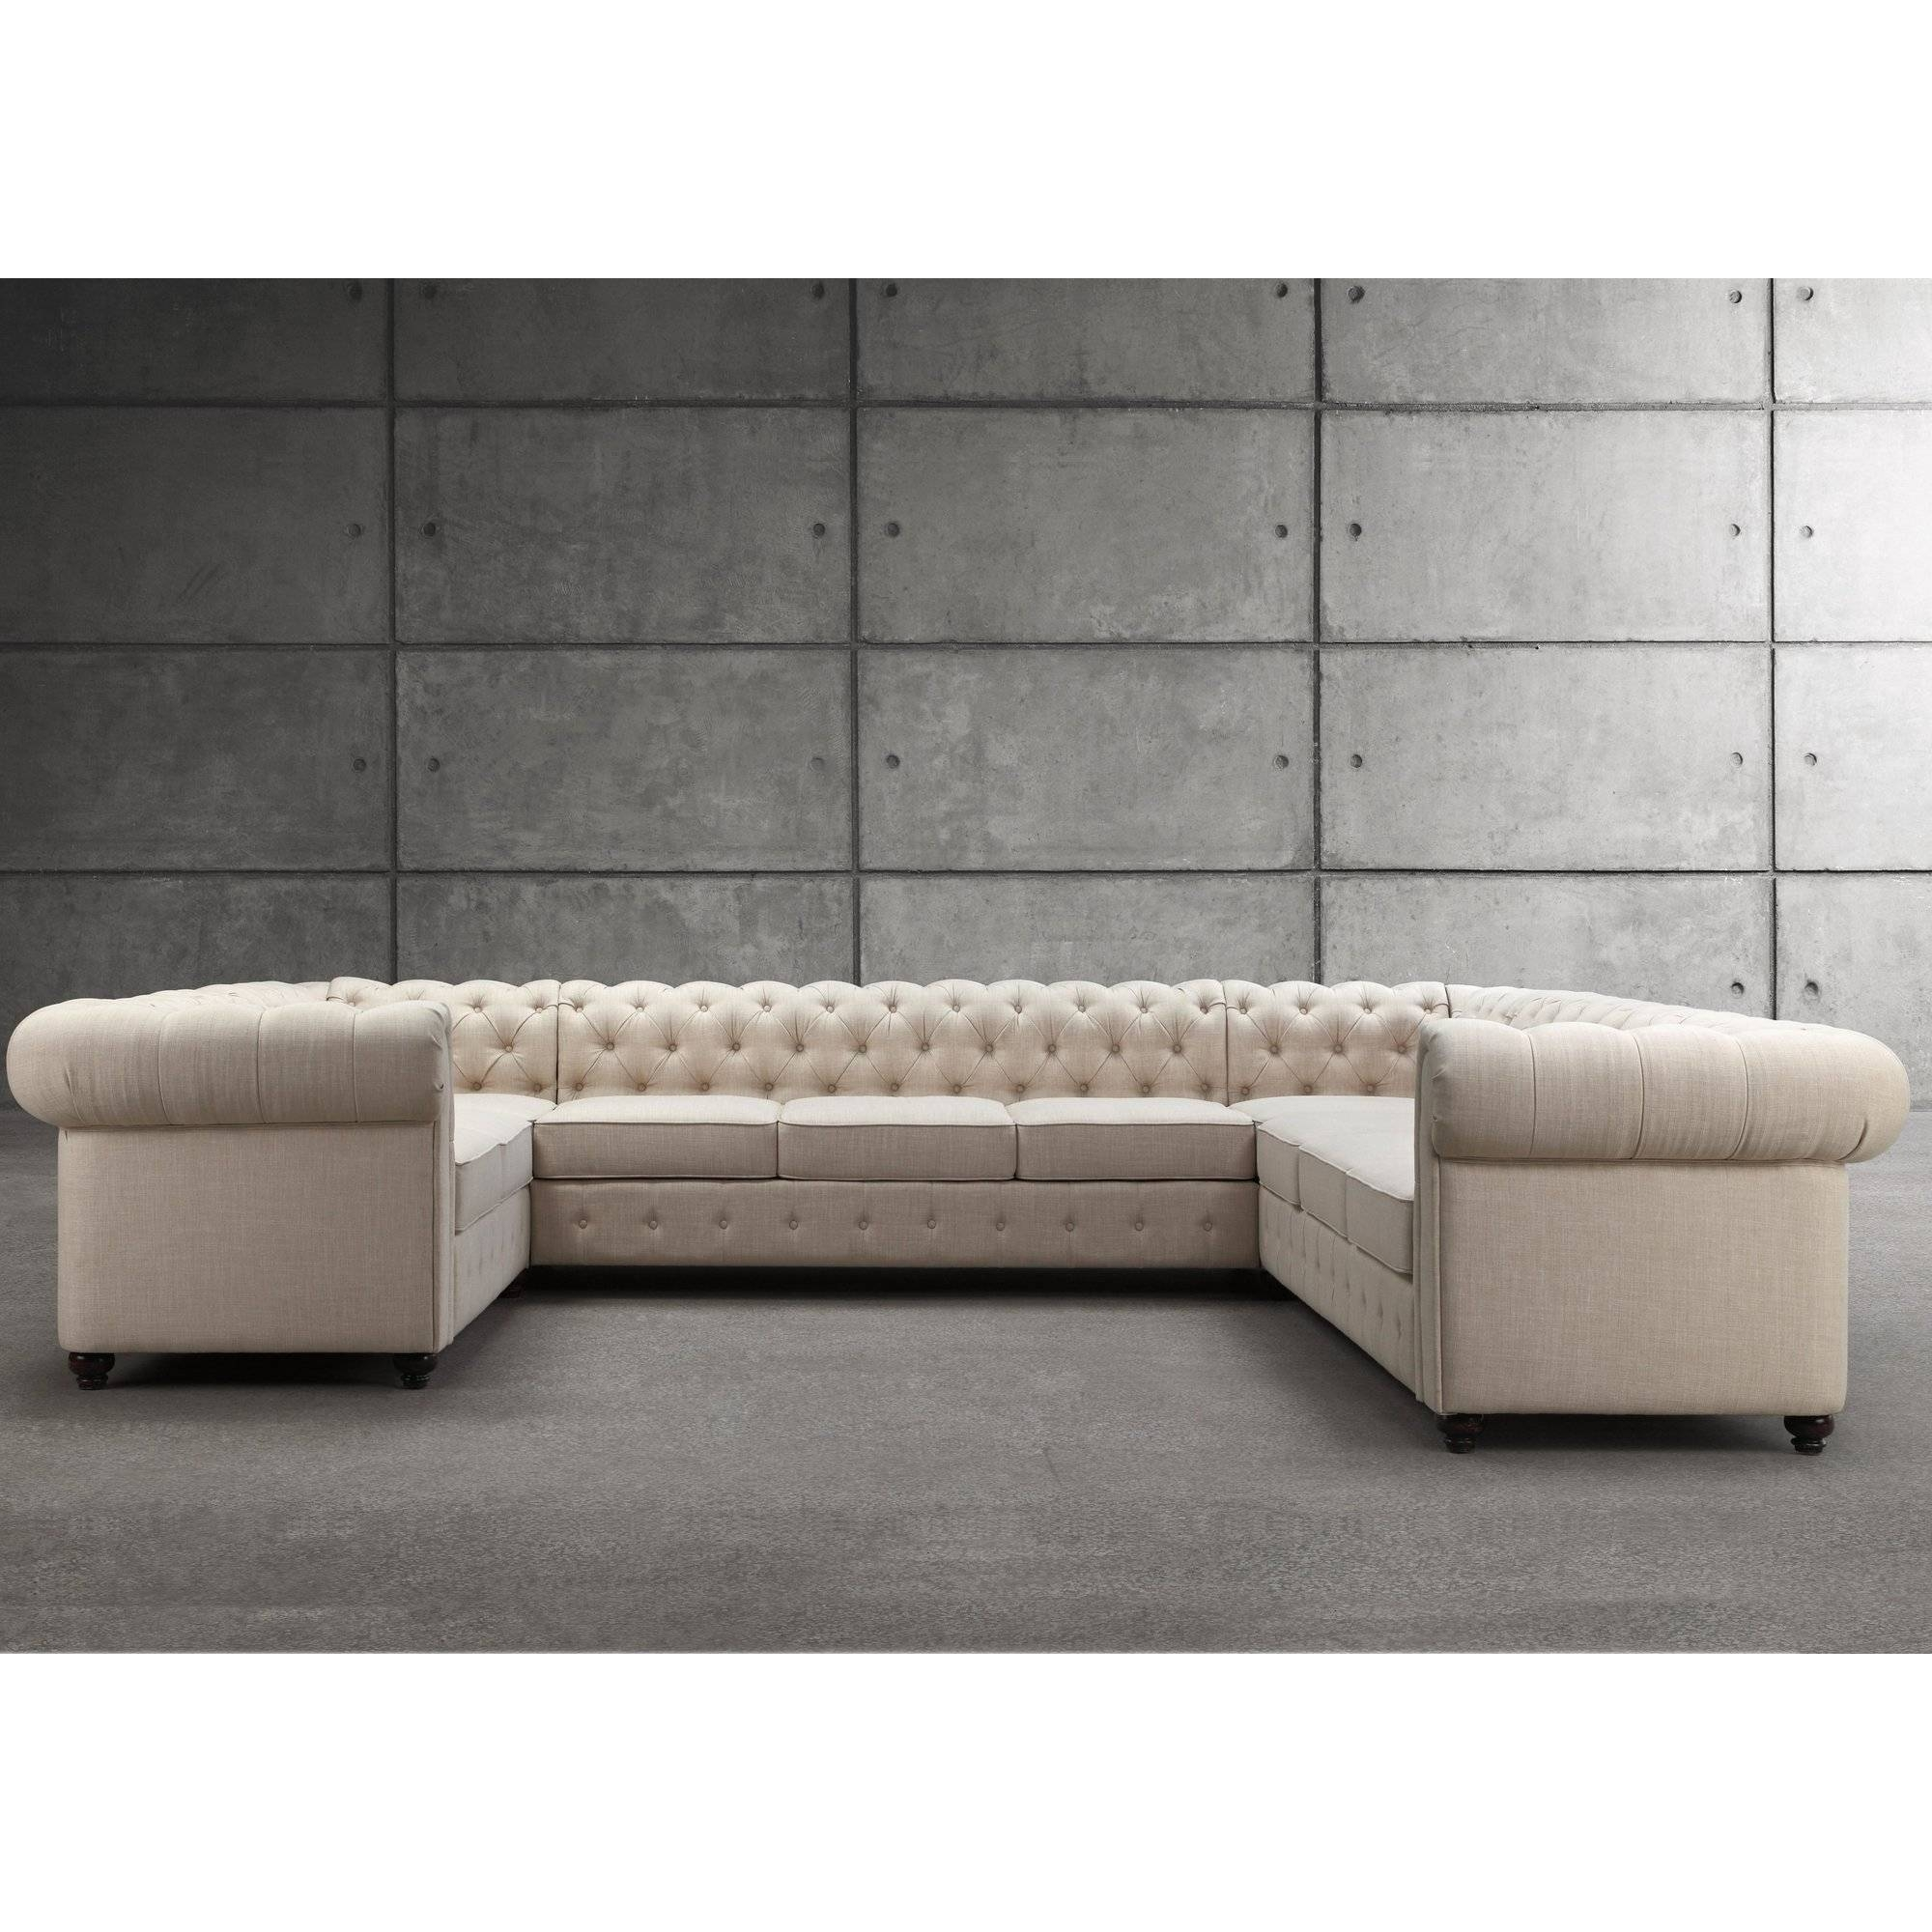 Spencer Leather Sectional Sofa – Leather Sofas Regarding Spencer Leather Sectional Sofas (View 15 of 15)